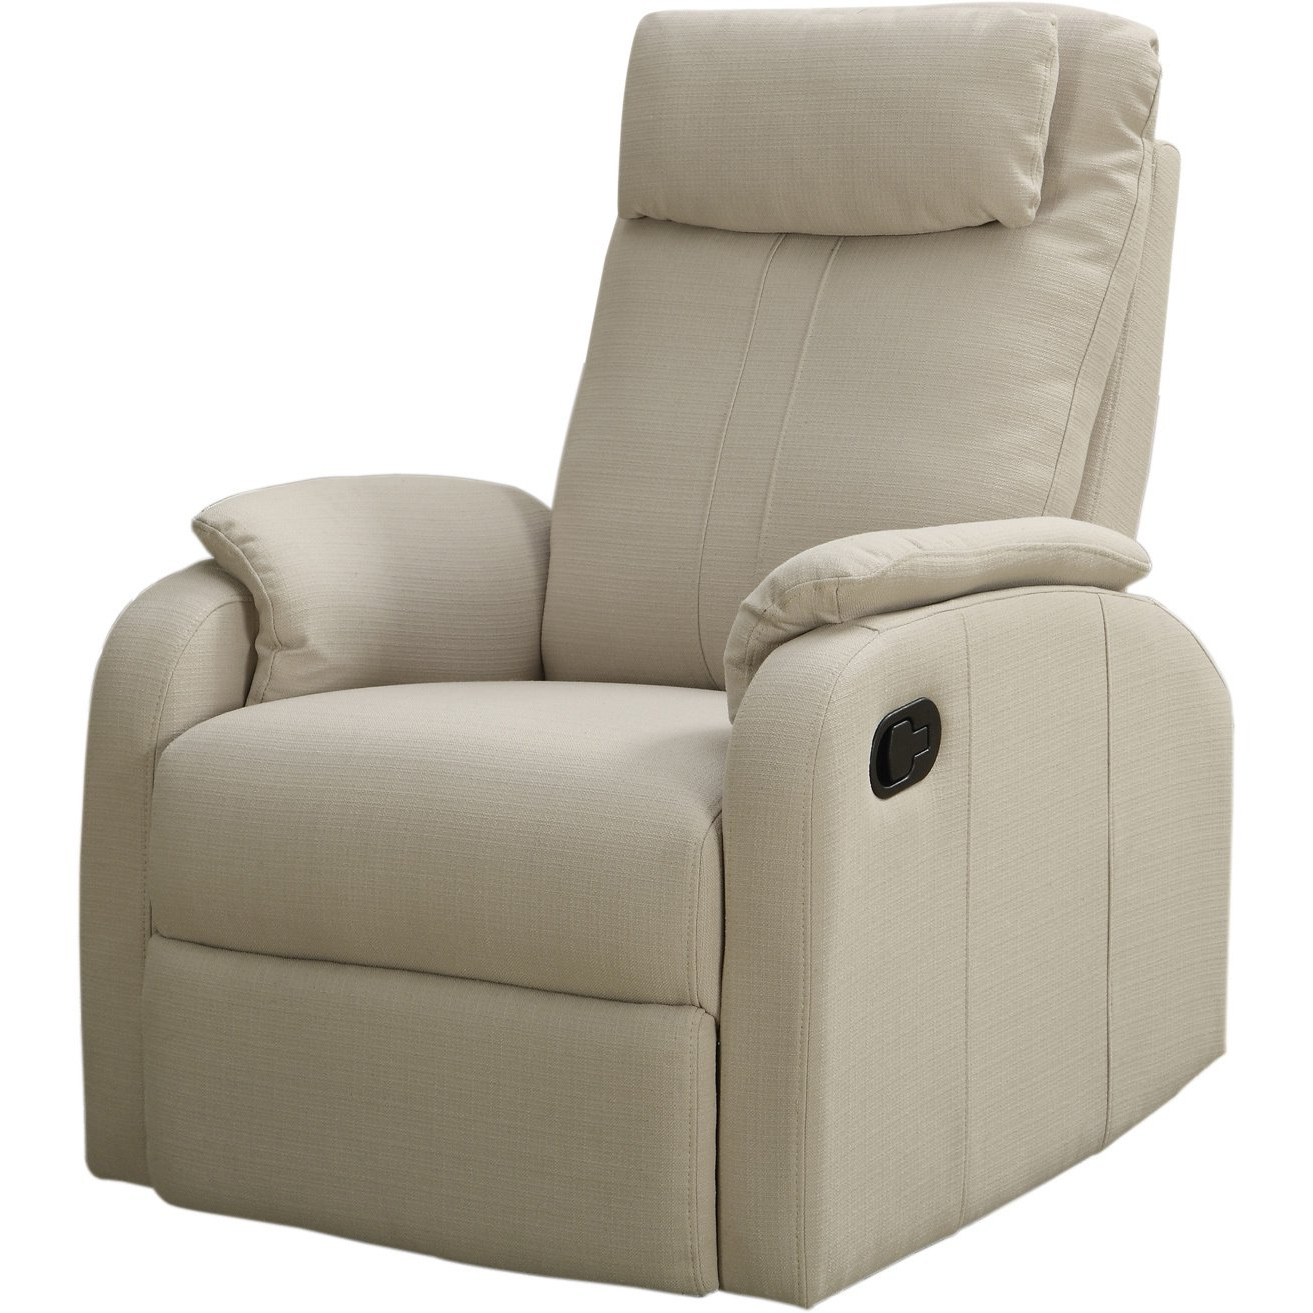 Shop Sand Linen Fabric Swivel Rocker Recliner – Free Shipping Today Intended For Most Popular Gannon Linen Power Swivel Recliners (View 19 of 20)